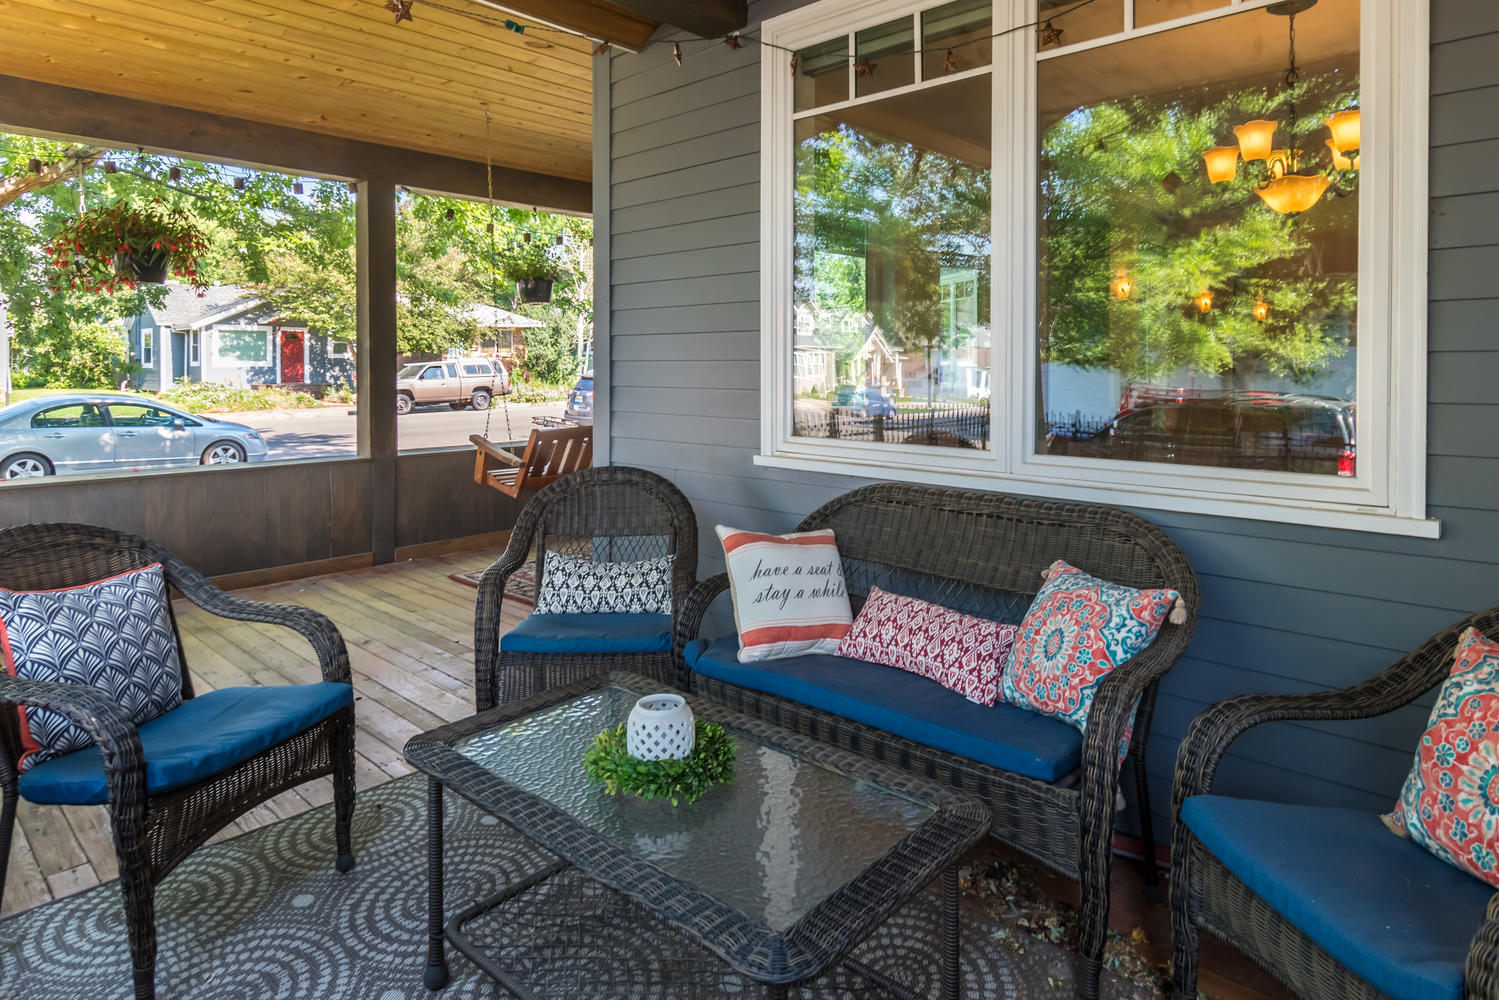 Wrap around porch with outdoor furniture and pillows